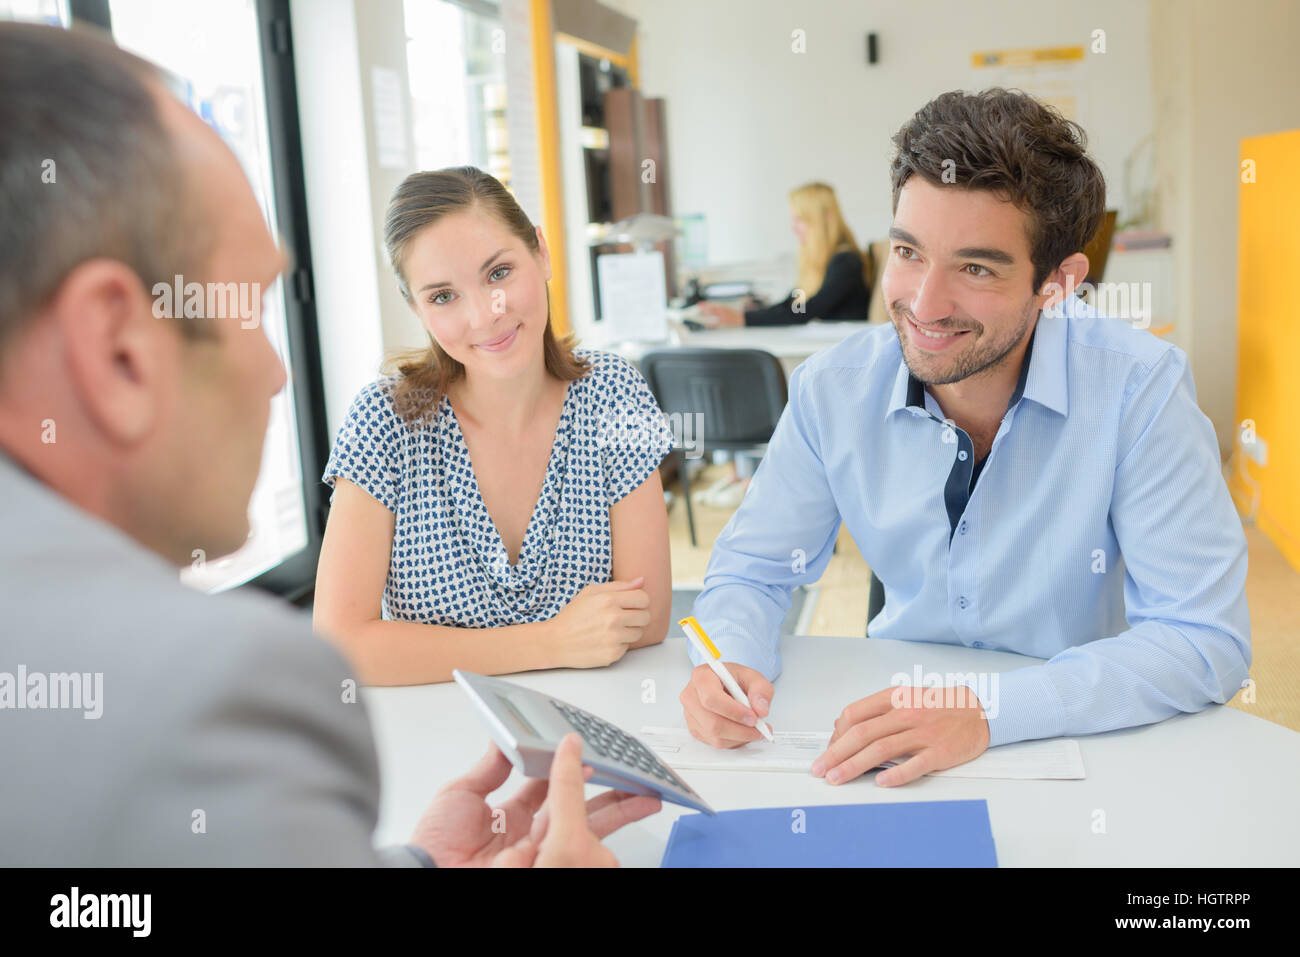 dealing with a loan officer - Stock Image